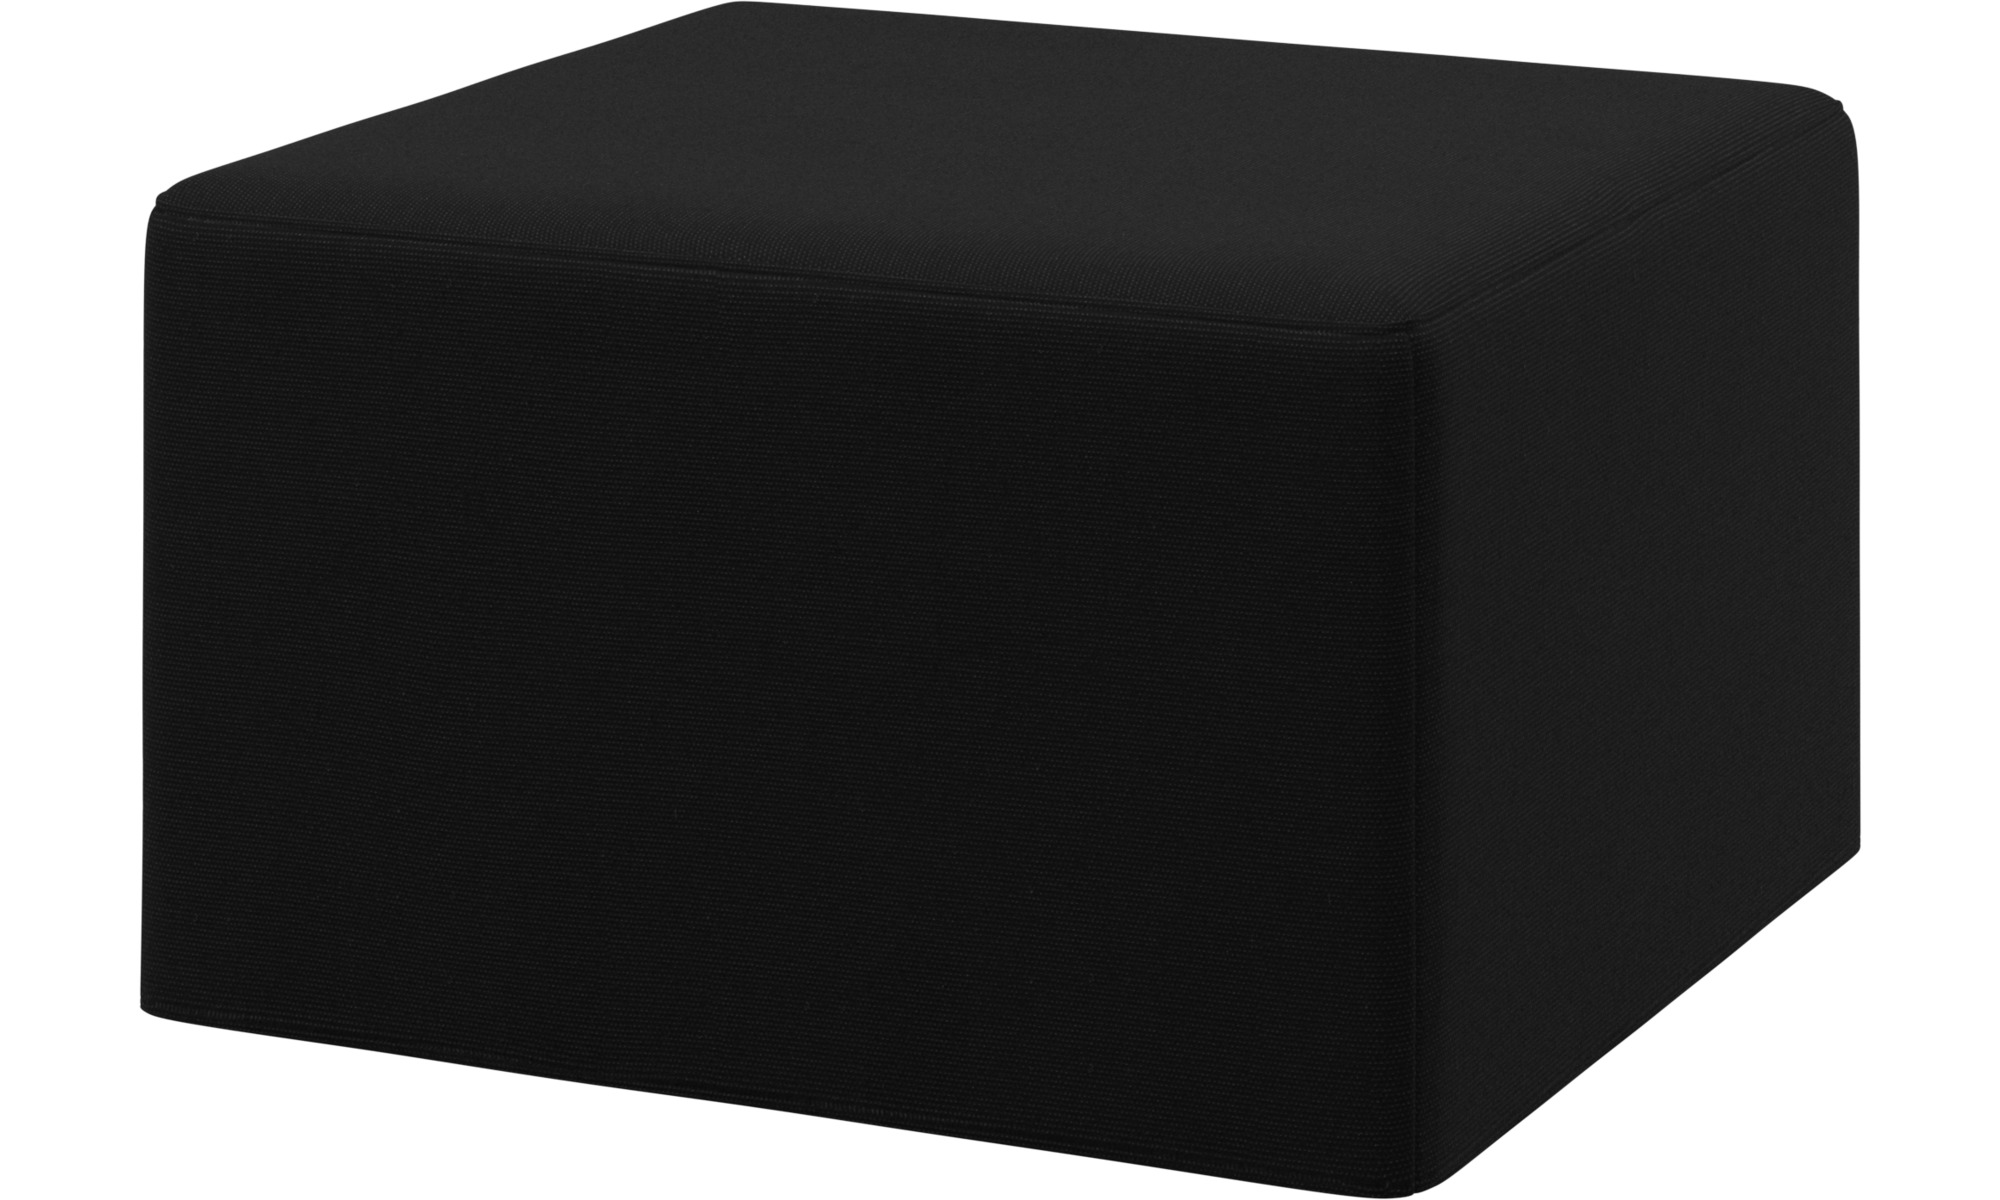 ... Ottomans   Xtra Footstool With Sleeping Function   Black   Fabric ...